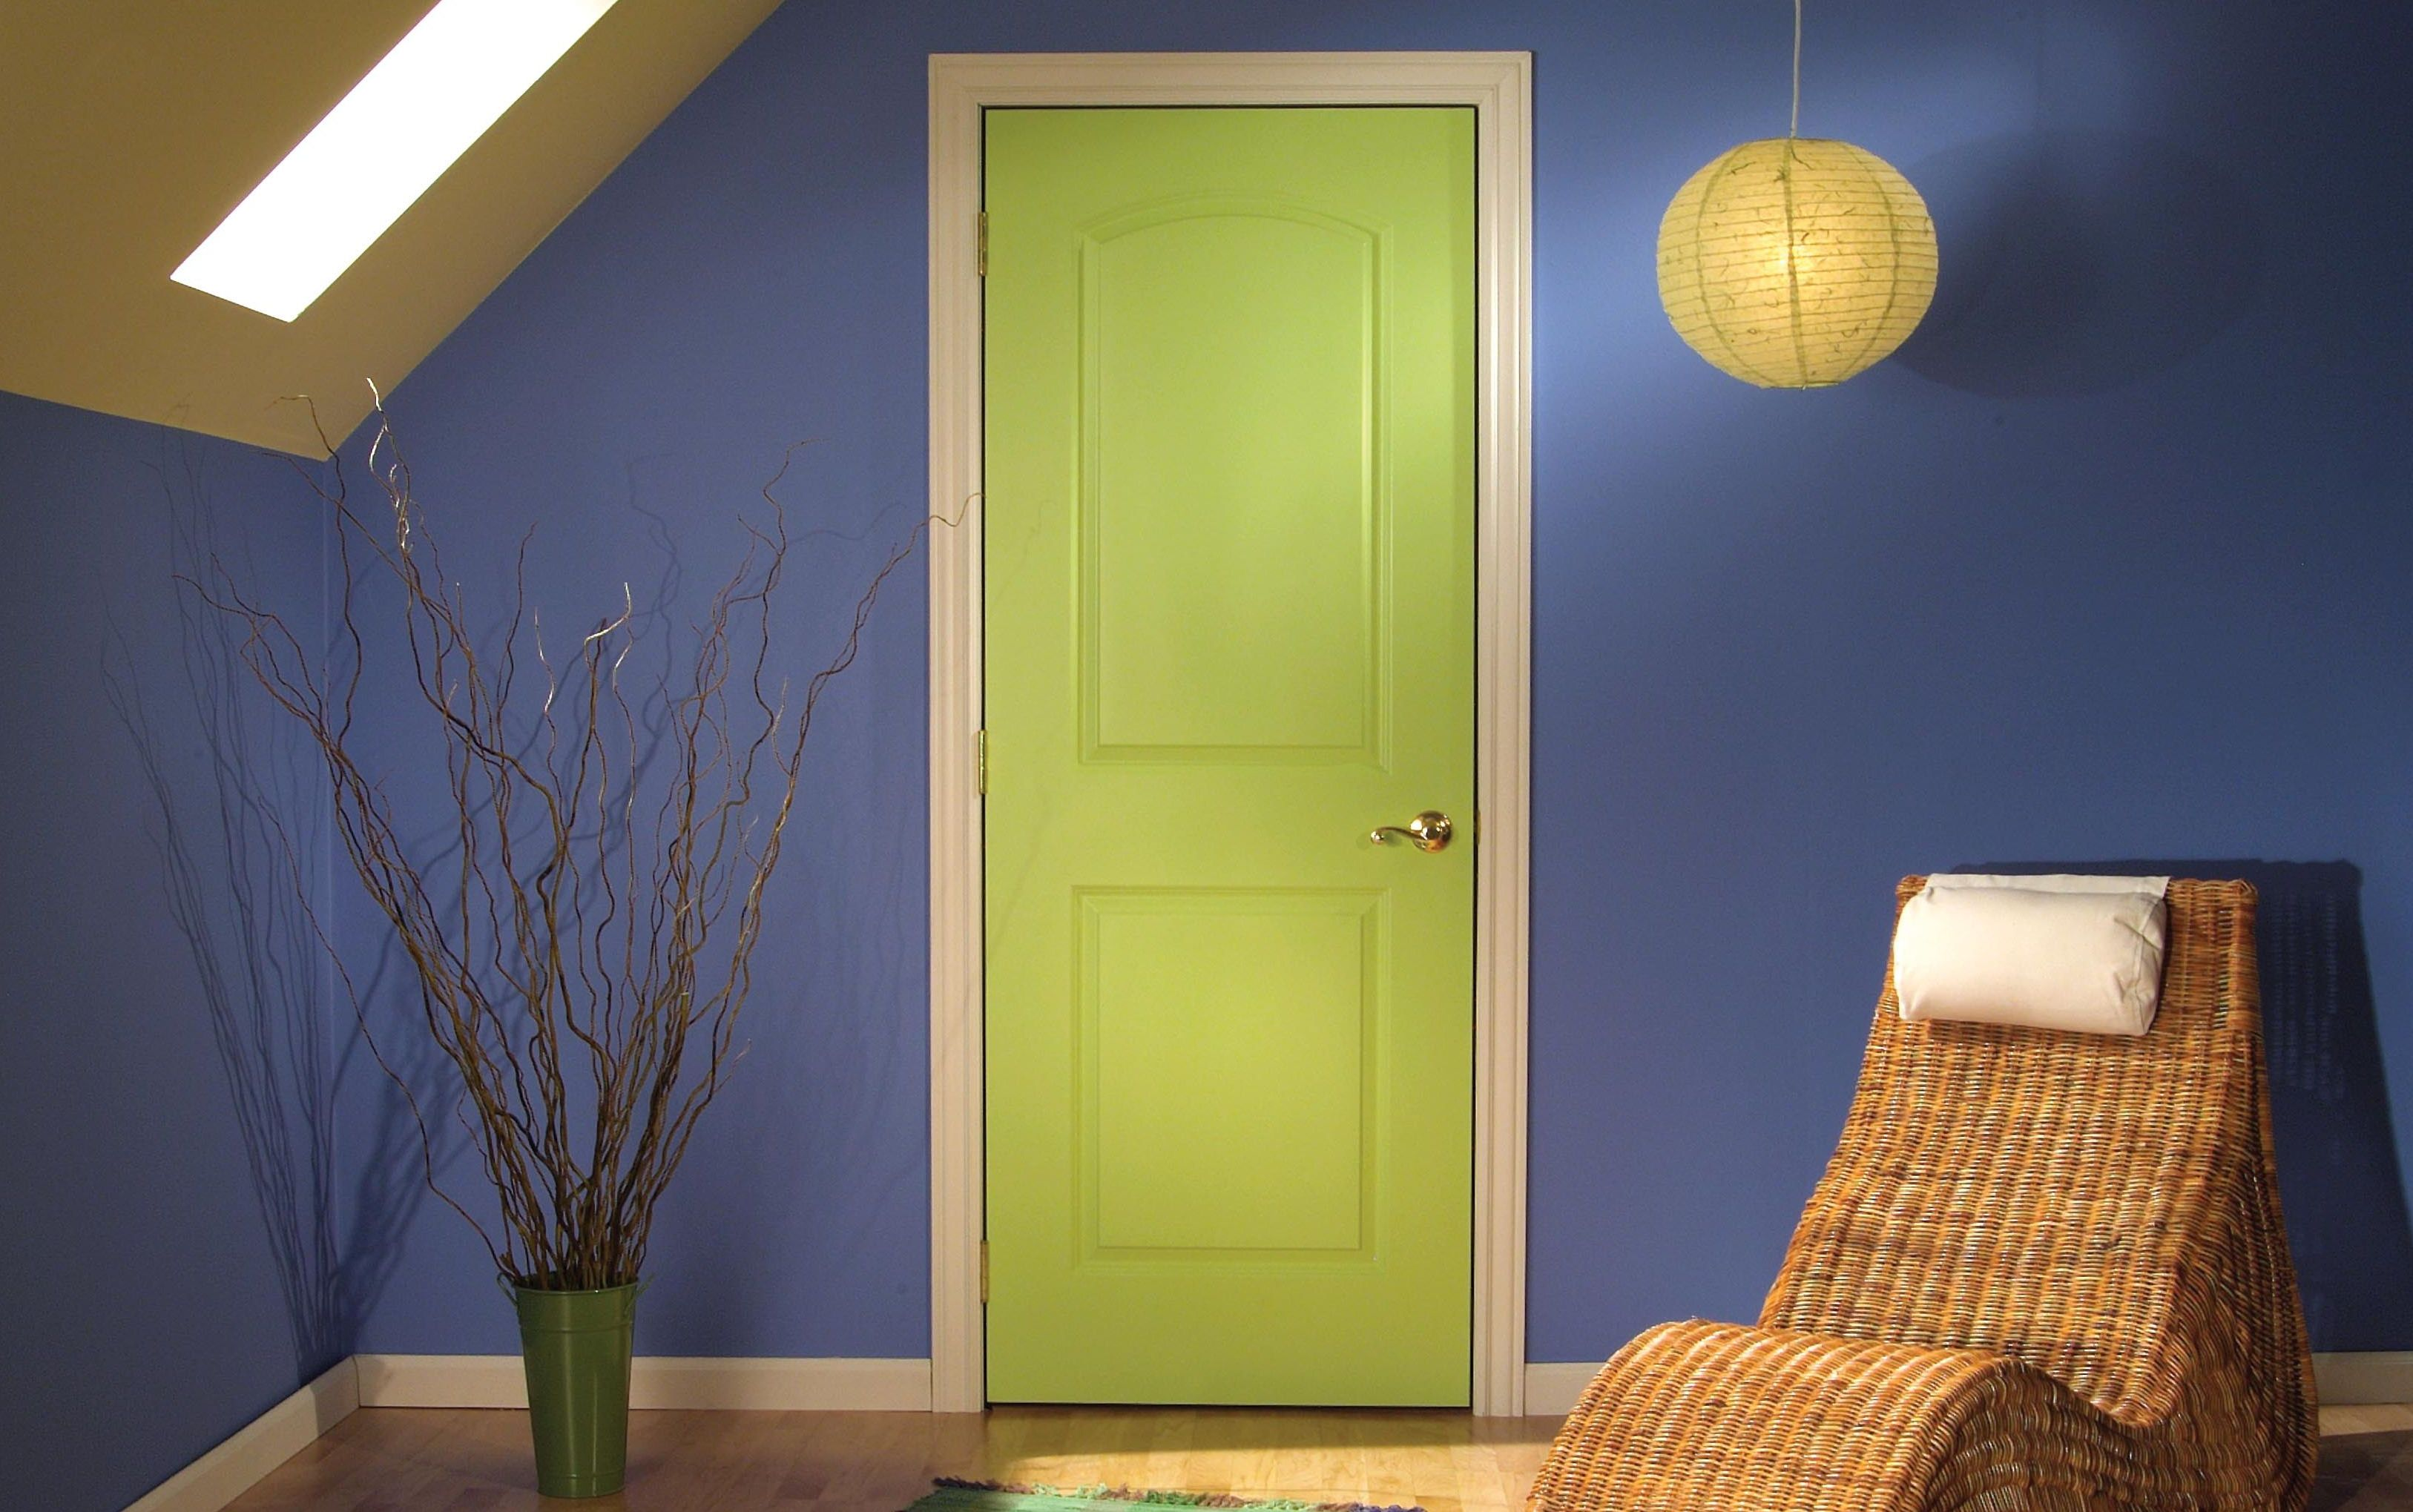 The door is painted in light green color